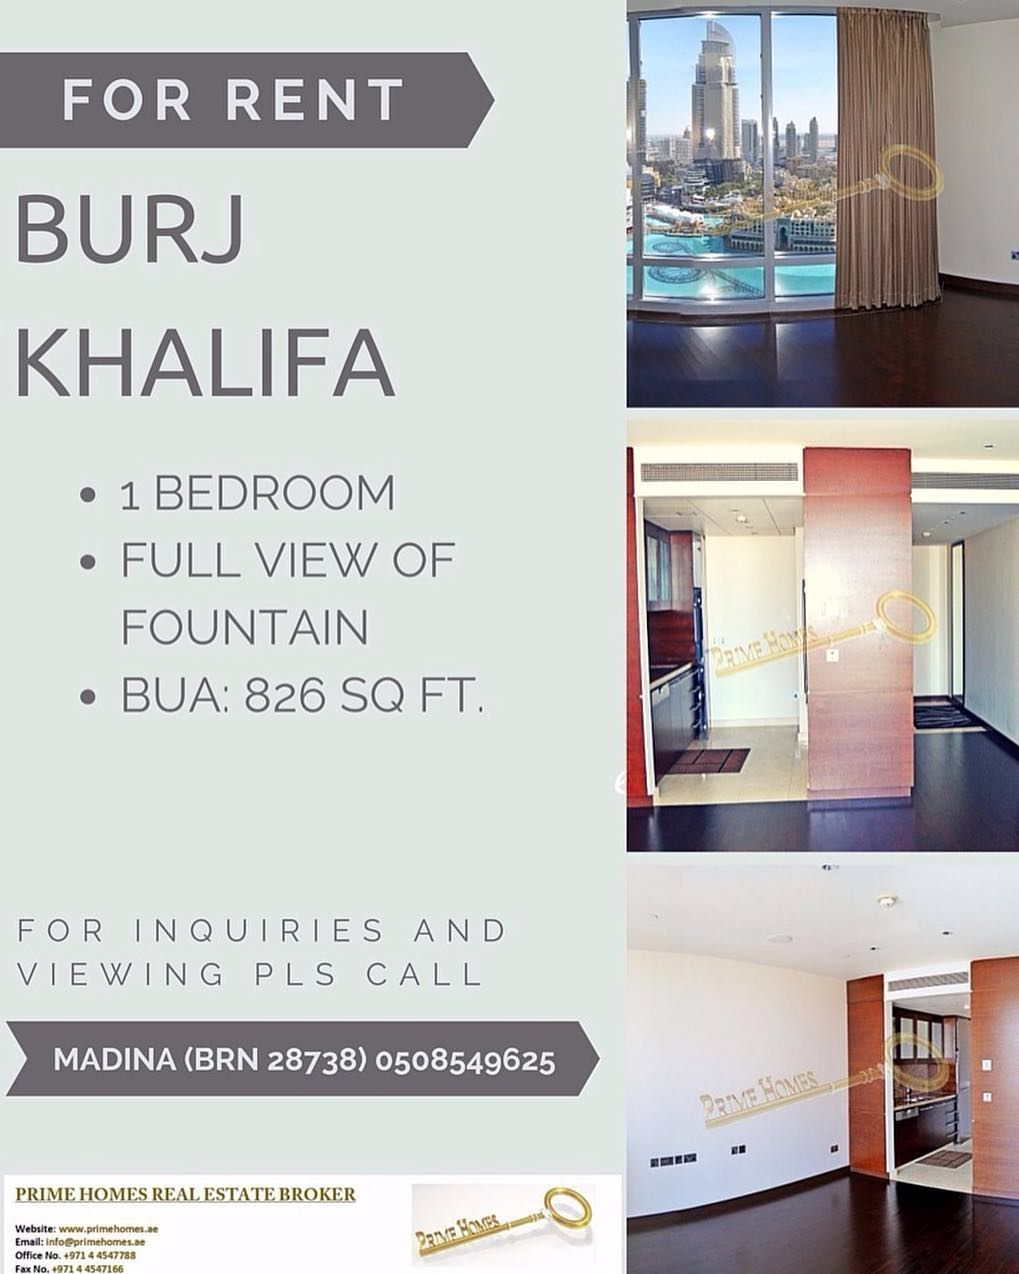 For Rent: 1BR #apartment in Burj Khalifa with full fountain view only for AED 160000 ($43835) per year. Call now to arrange the viewing to Madina (BRN 28738) on 971 (0)50 8549625 or email on madina@primehomes.ae. #mydowntowndubai #burjkhalifa #forrent #apartments #mydubai #realestatedubai #realestate originally shared on Instagram via ArabianEscapes.com by prime_homes_dubai #Apartments #Villas #Properties #Property #ArabianEscapes #DubaiProperties #RealEstateDubai #Dubai #UAE #AbuDhabi…